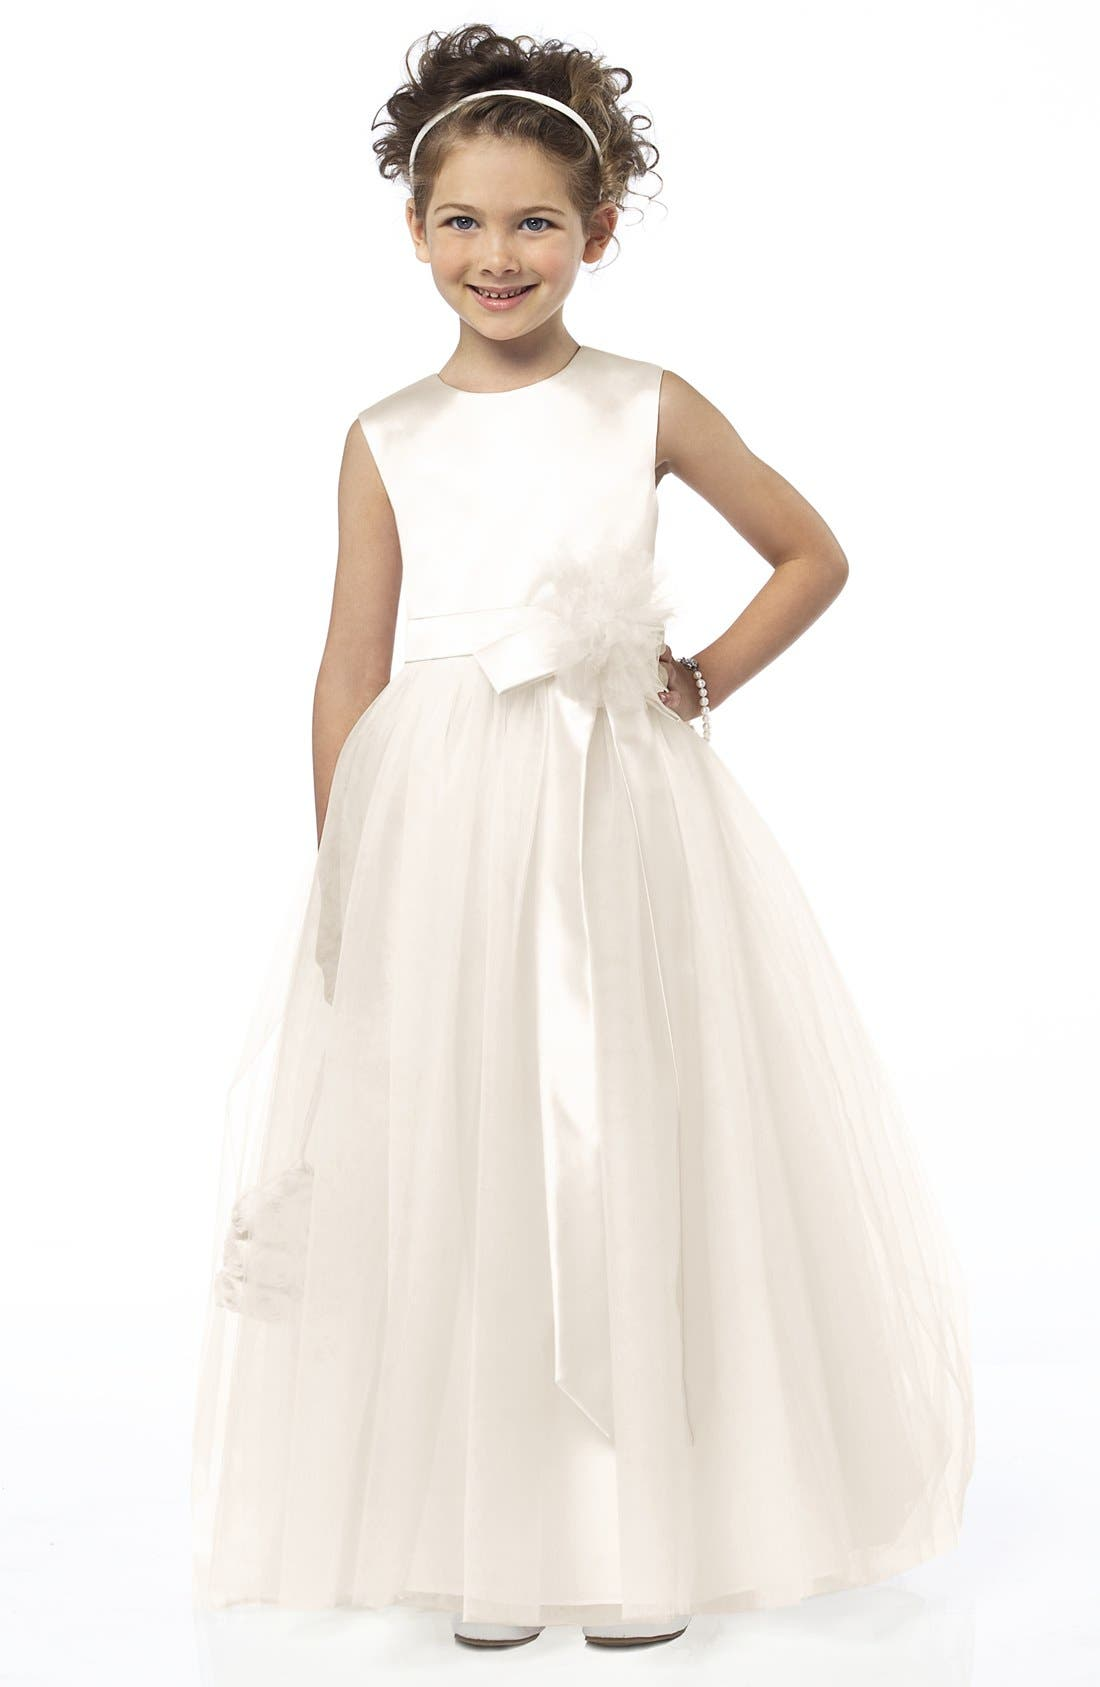 Sleeveless Satin & Tulle Flower Girl Dress,                             Main thumbnail 1, color,                             900